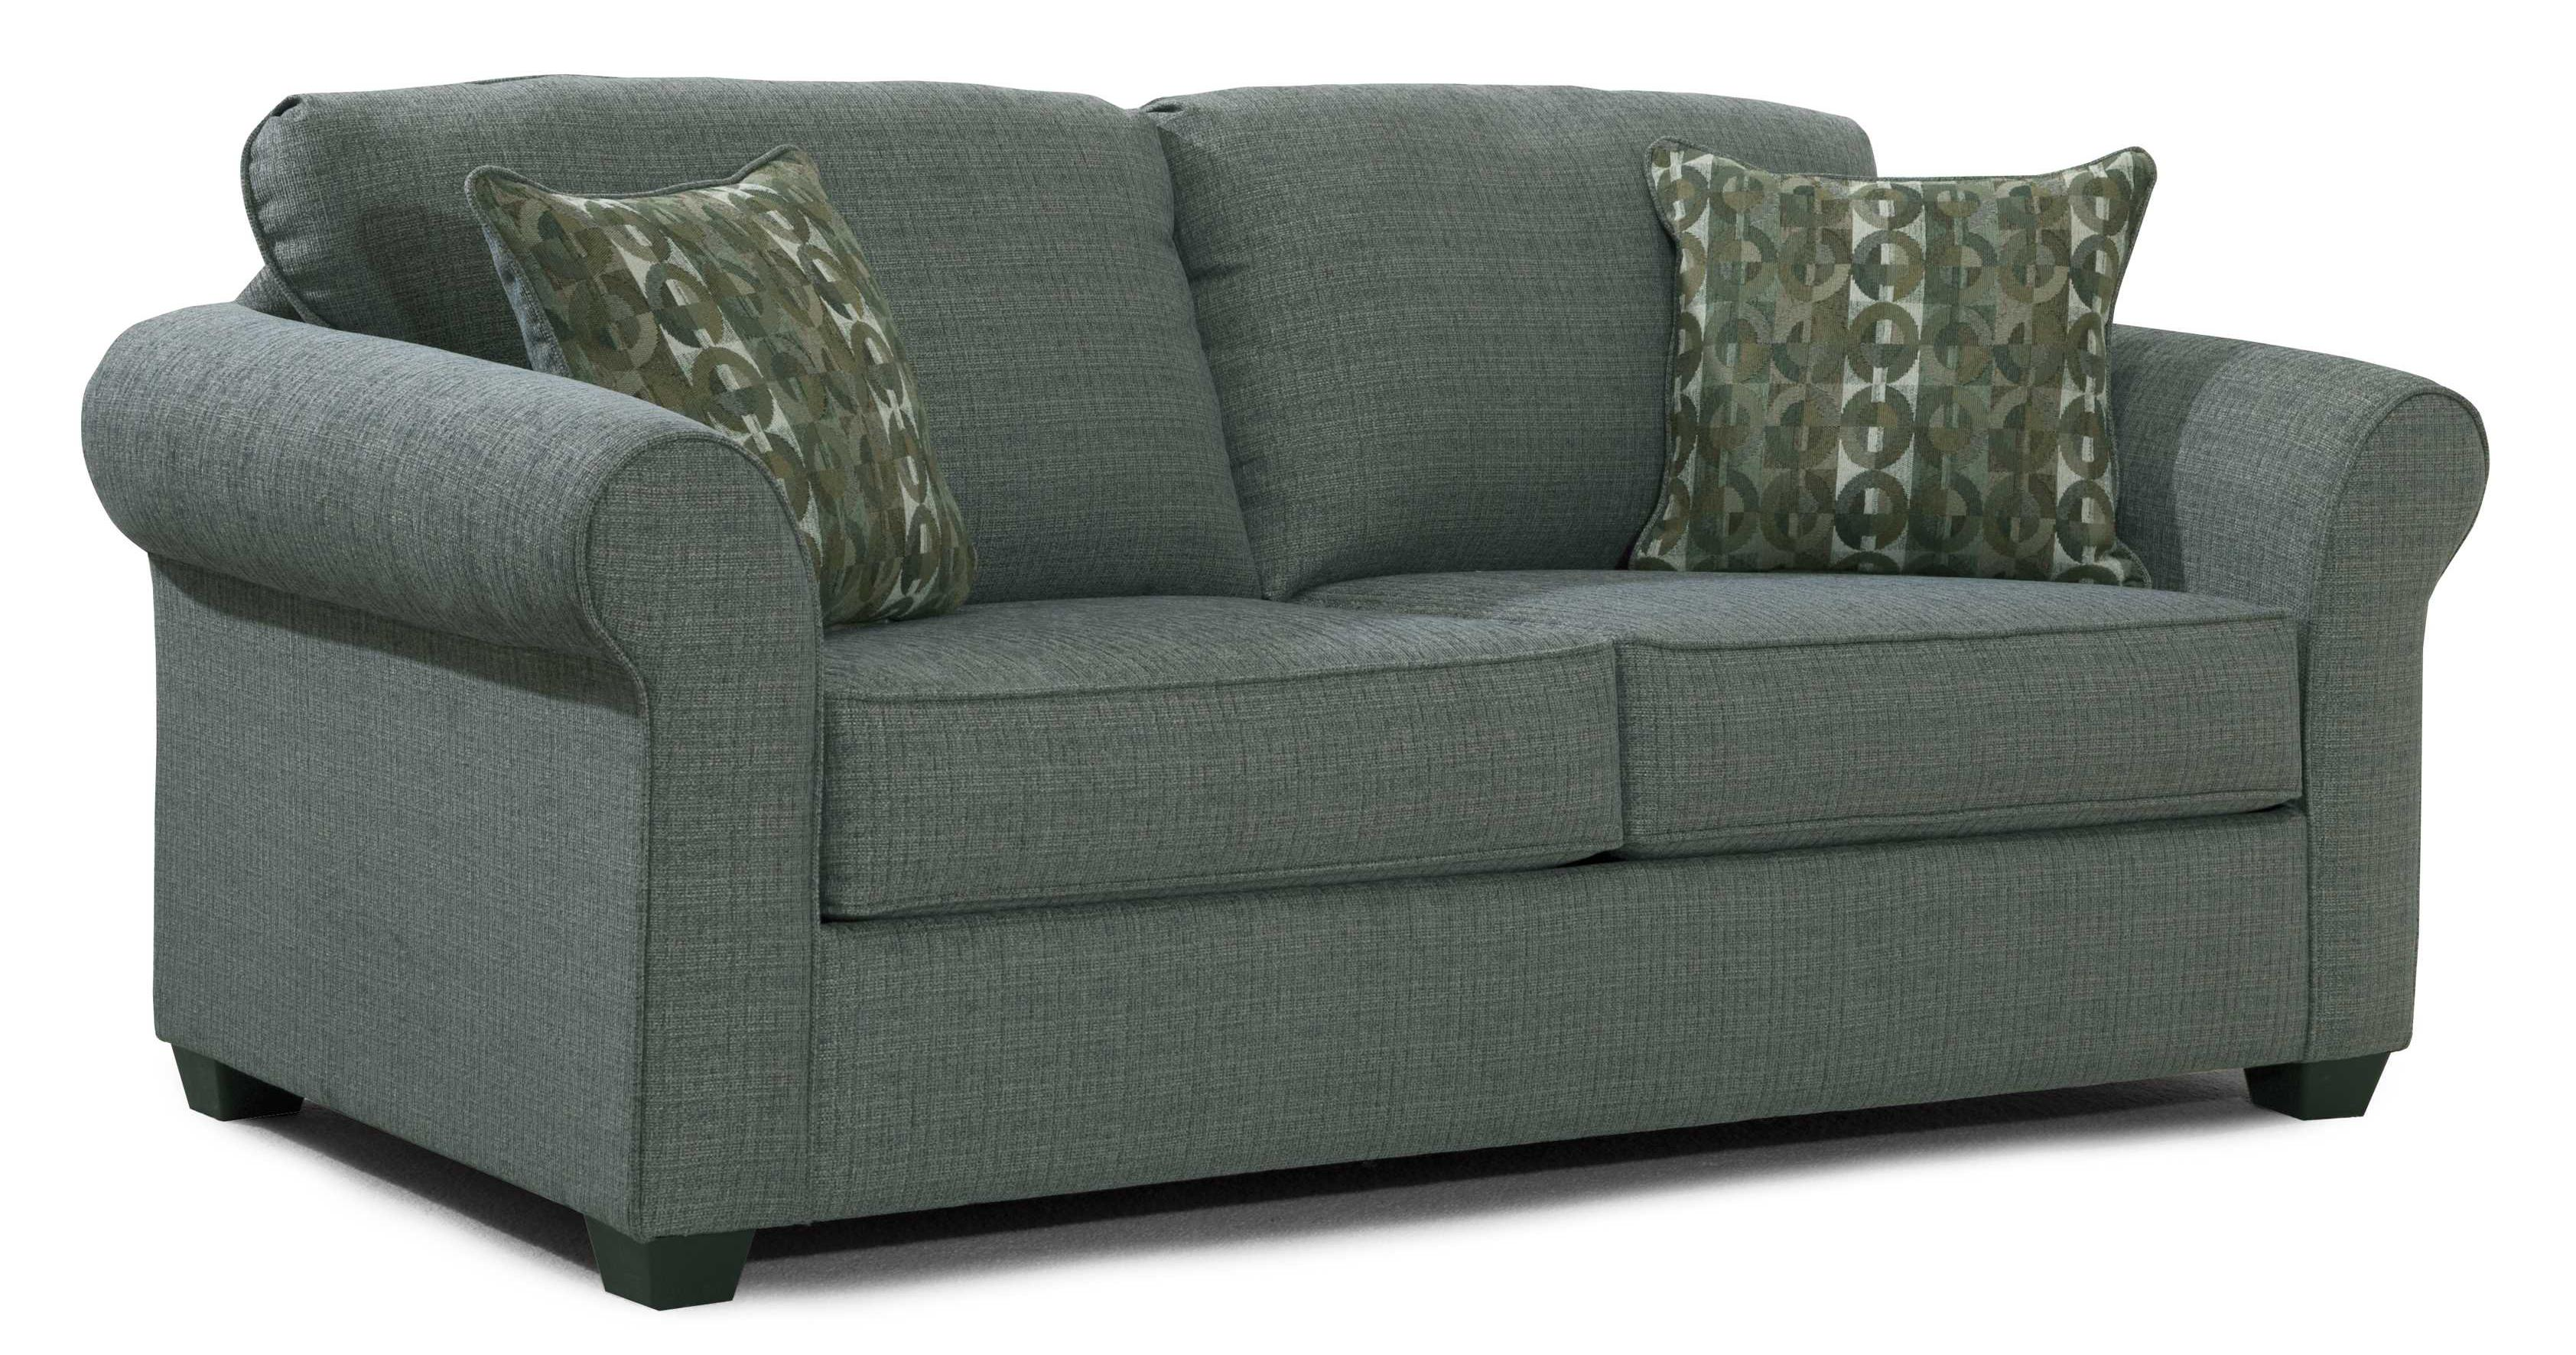 1750 Twin Sleeper  by Serta Upholstery by Hughes Furniture at Rooms for Less